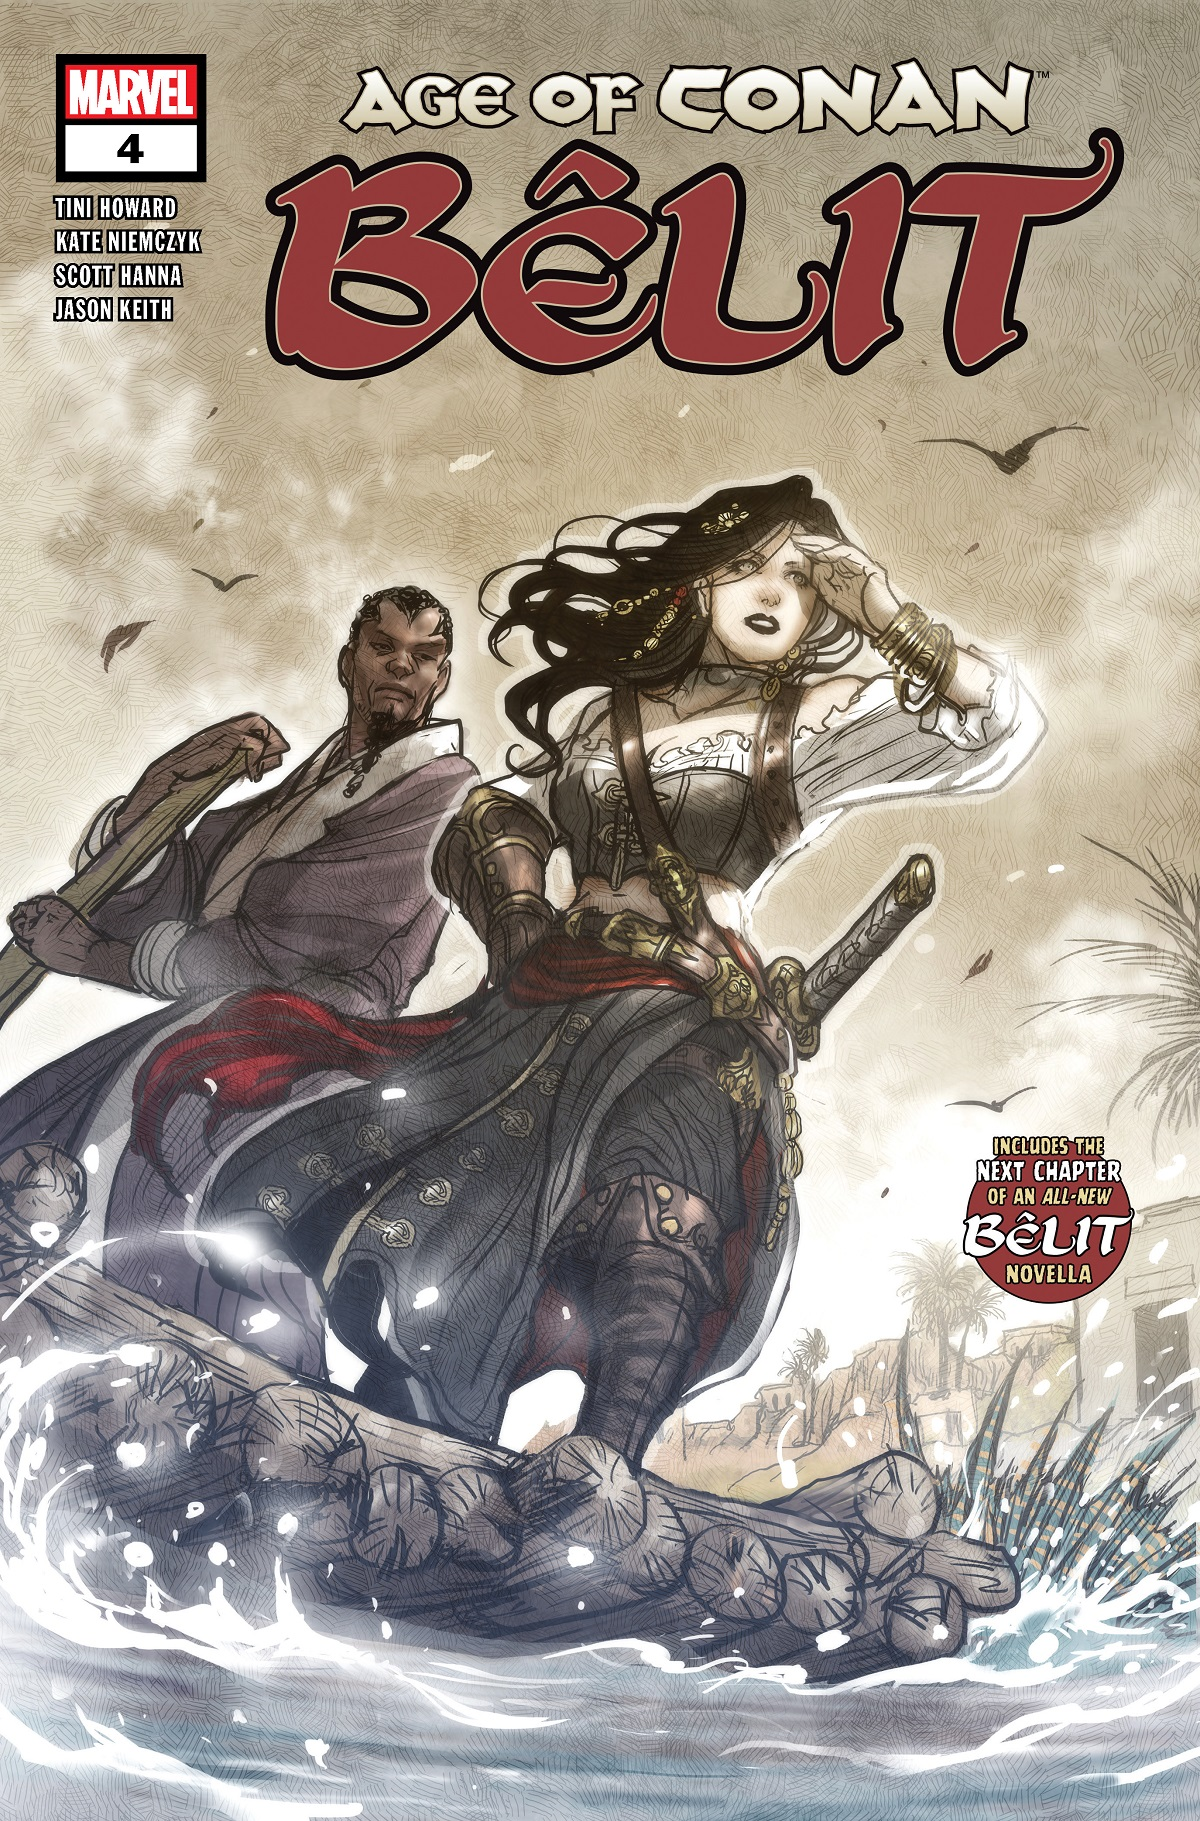 Age of Conan: Belit (2019) #4